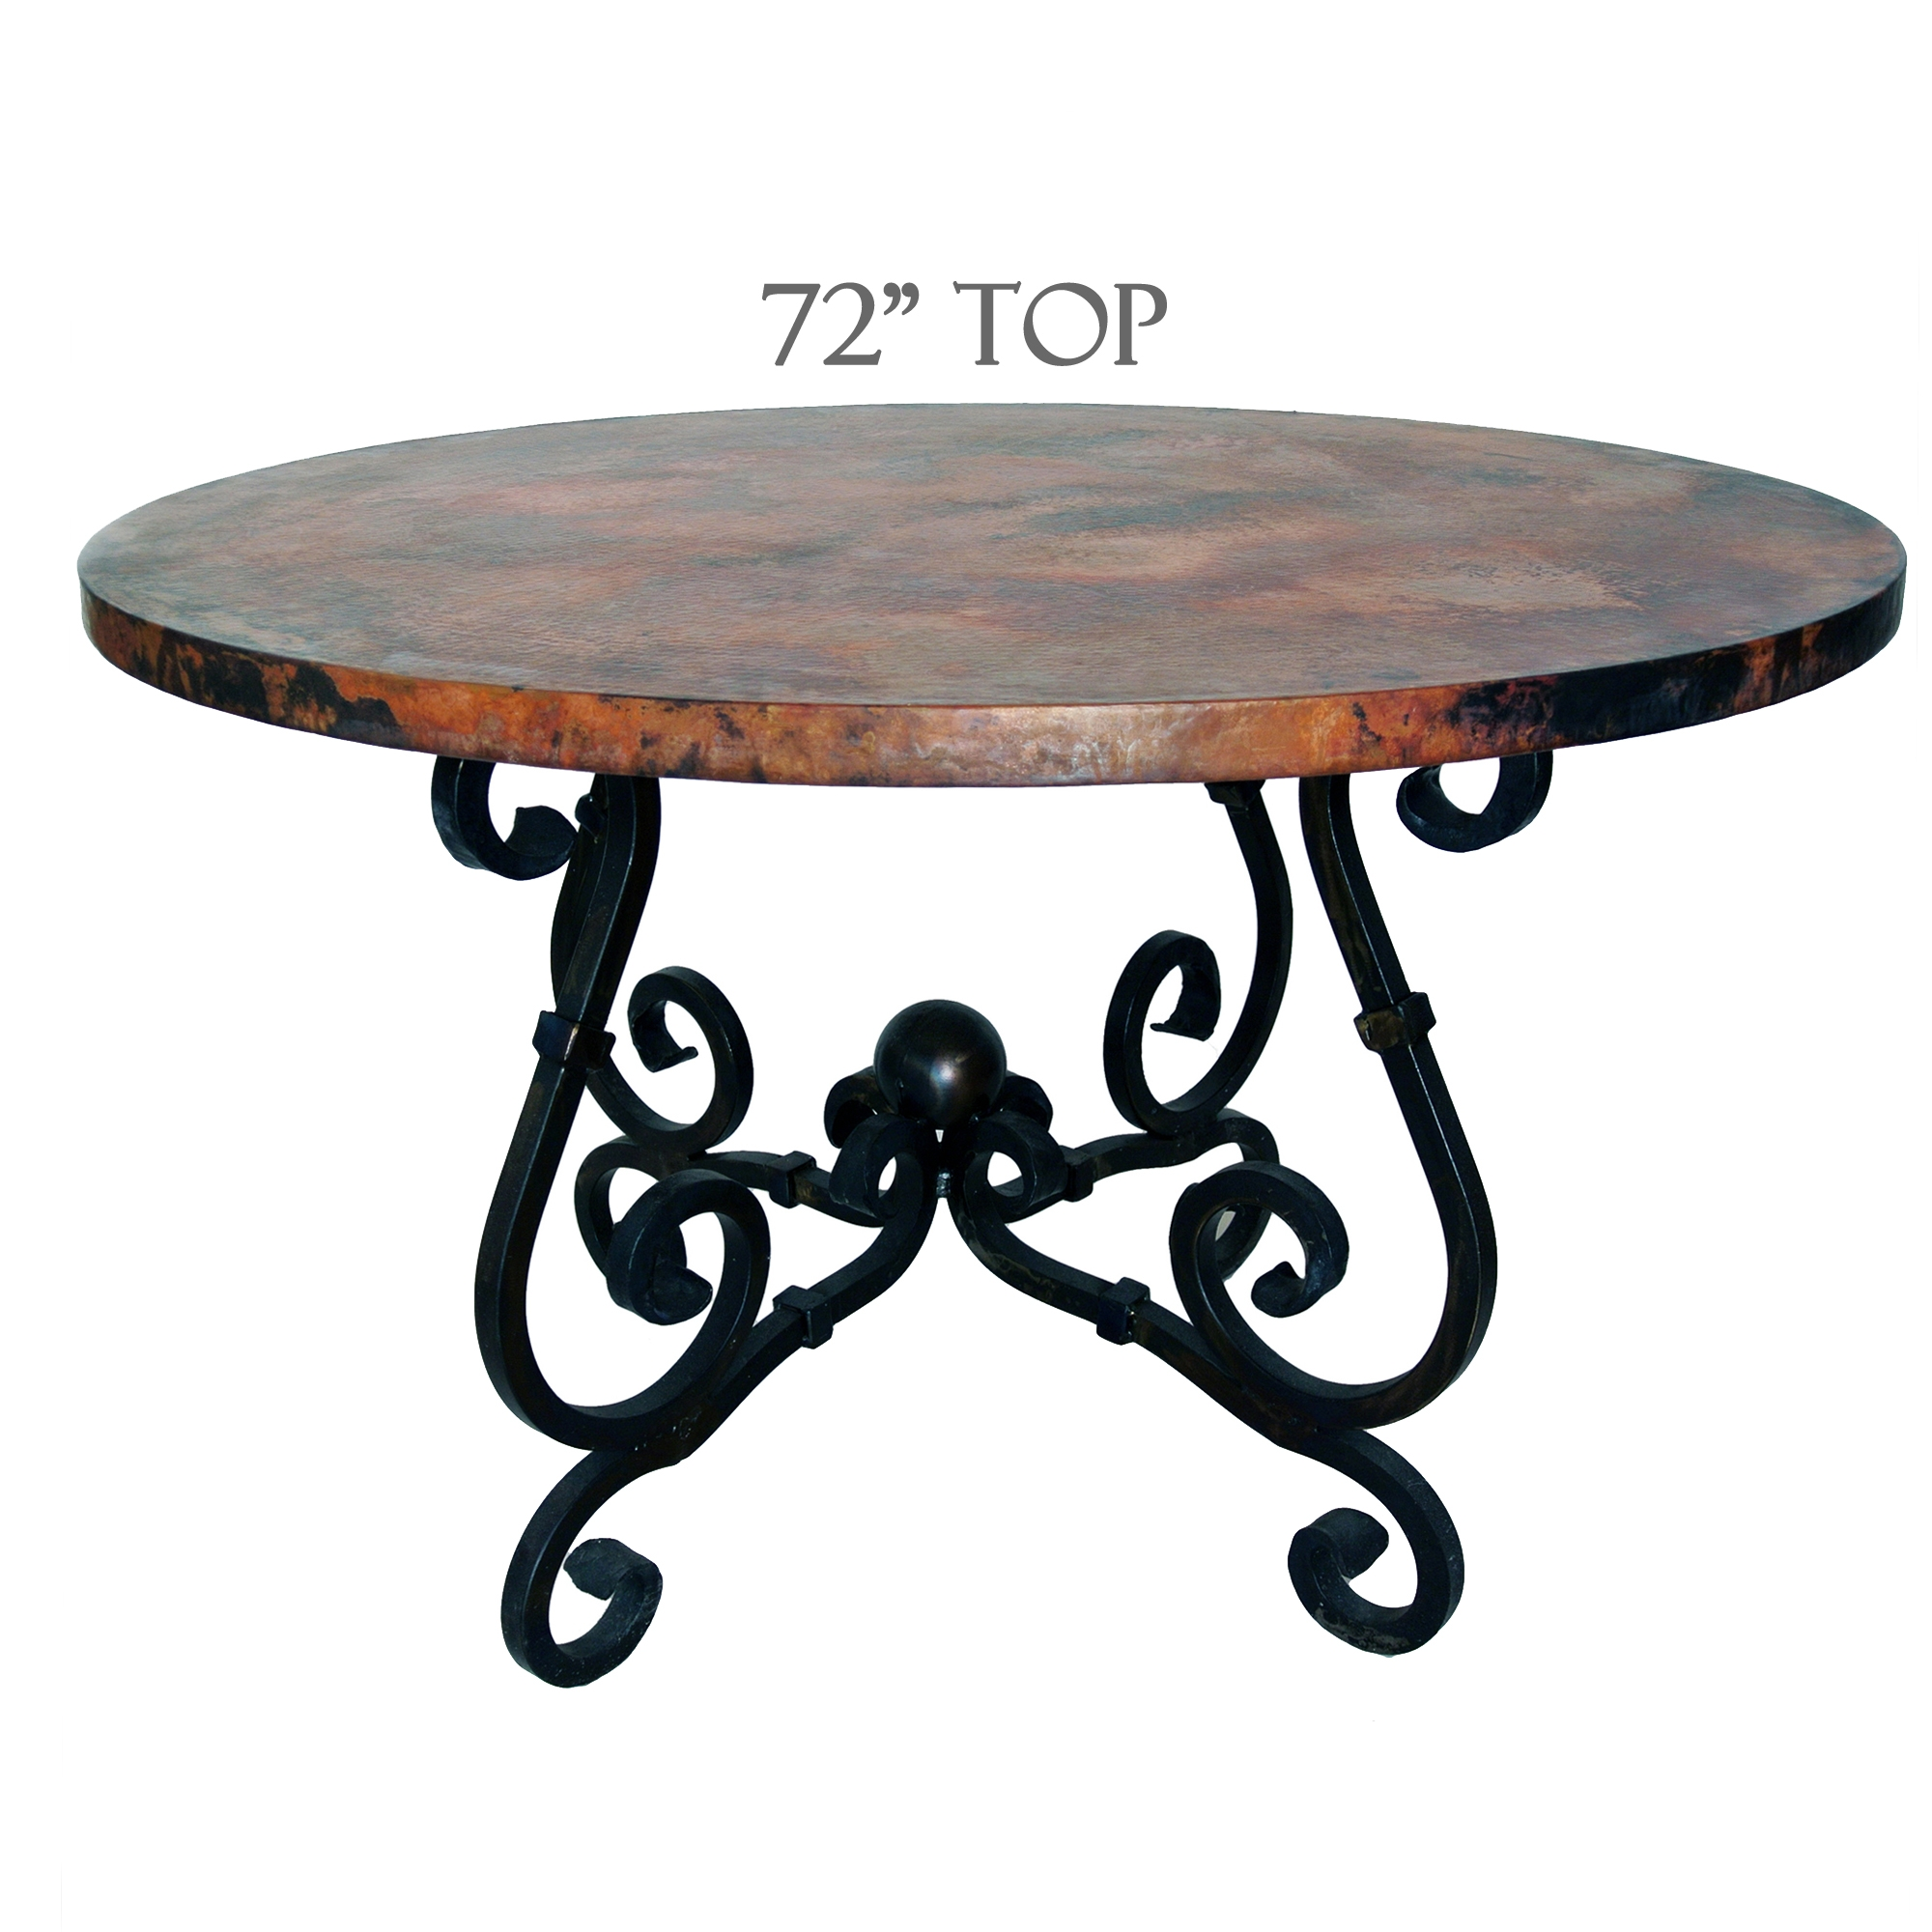 French Dining Table 72in Diameter Copper Top Timeless  : TWI M5 F 503A 2 from www.timelesswroughtiron.com size 2000 x 2000 jpeg 895kB